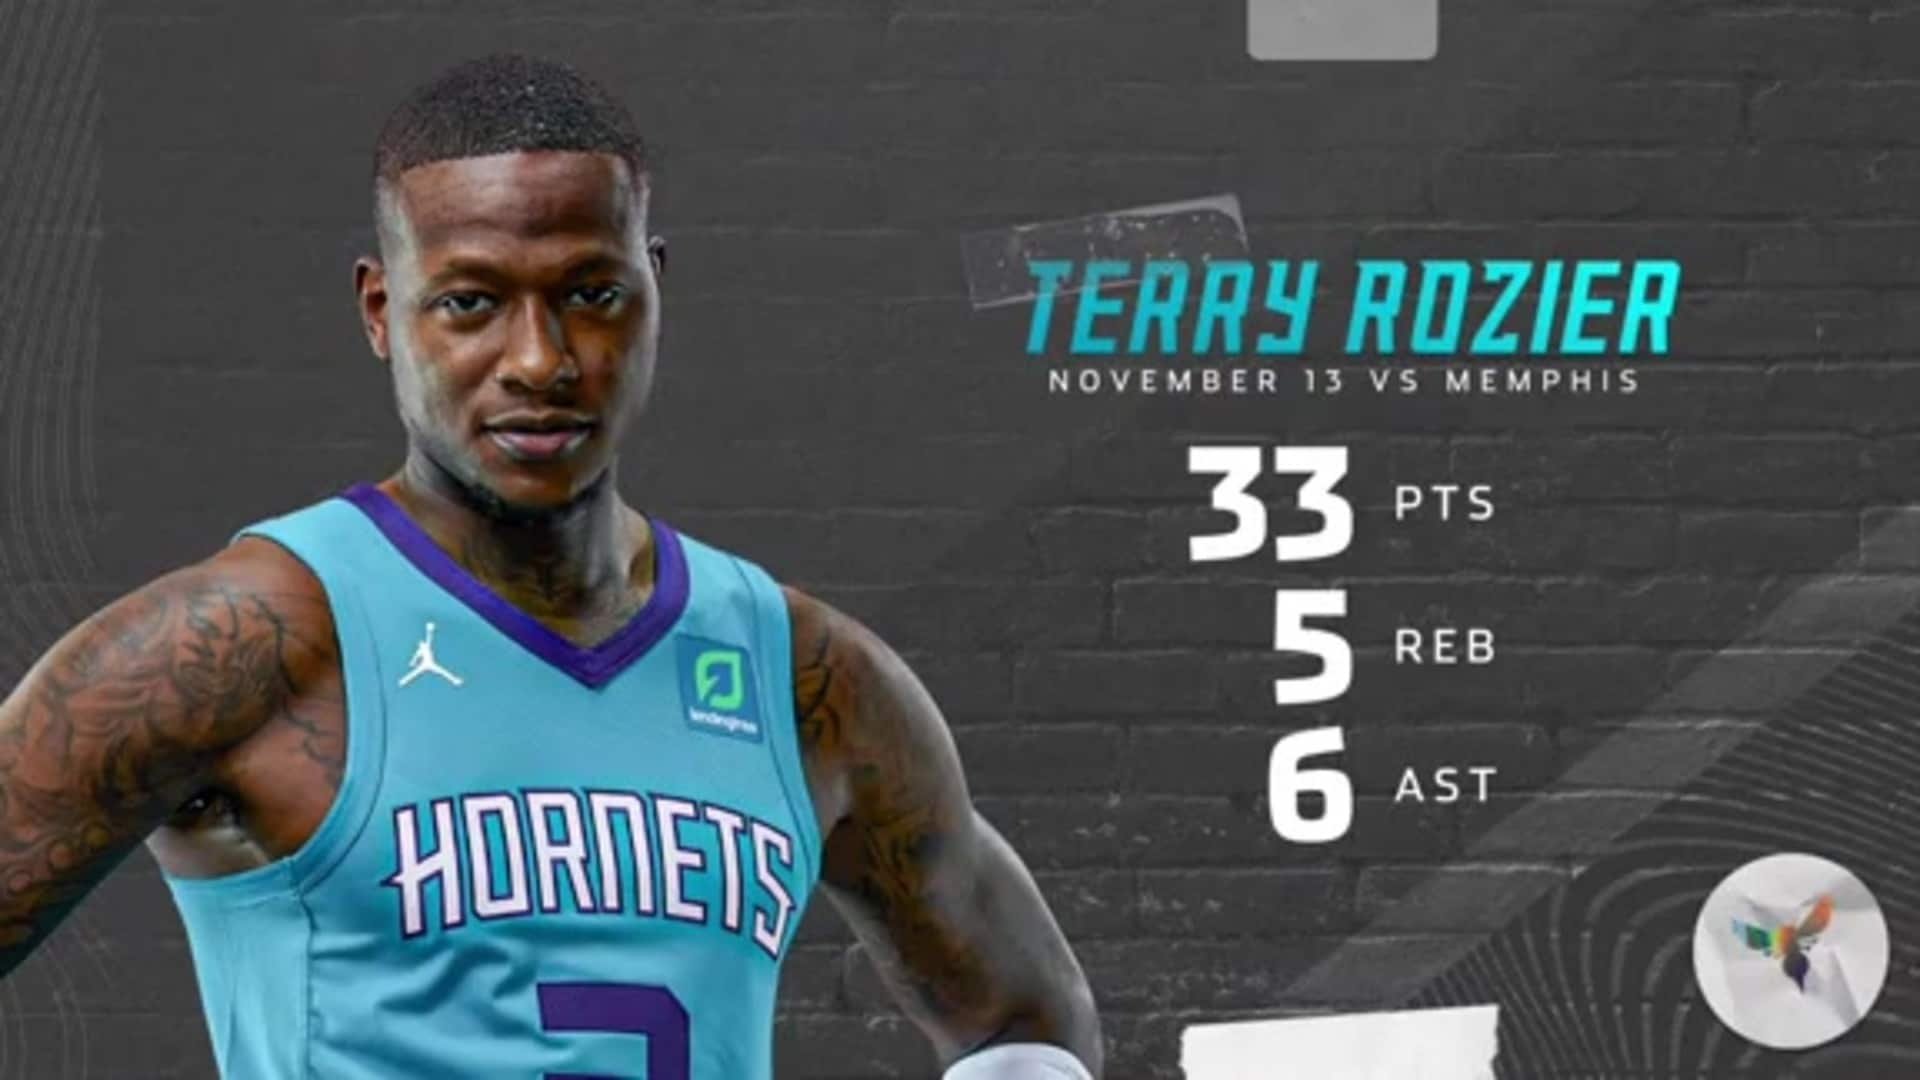 Rozier Matches Career High vs Memphis